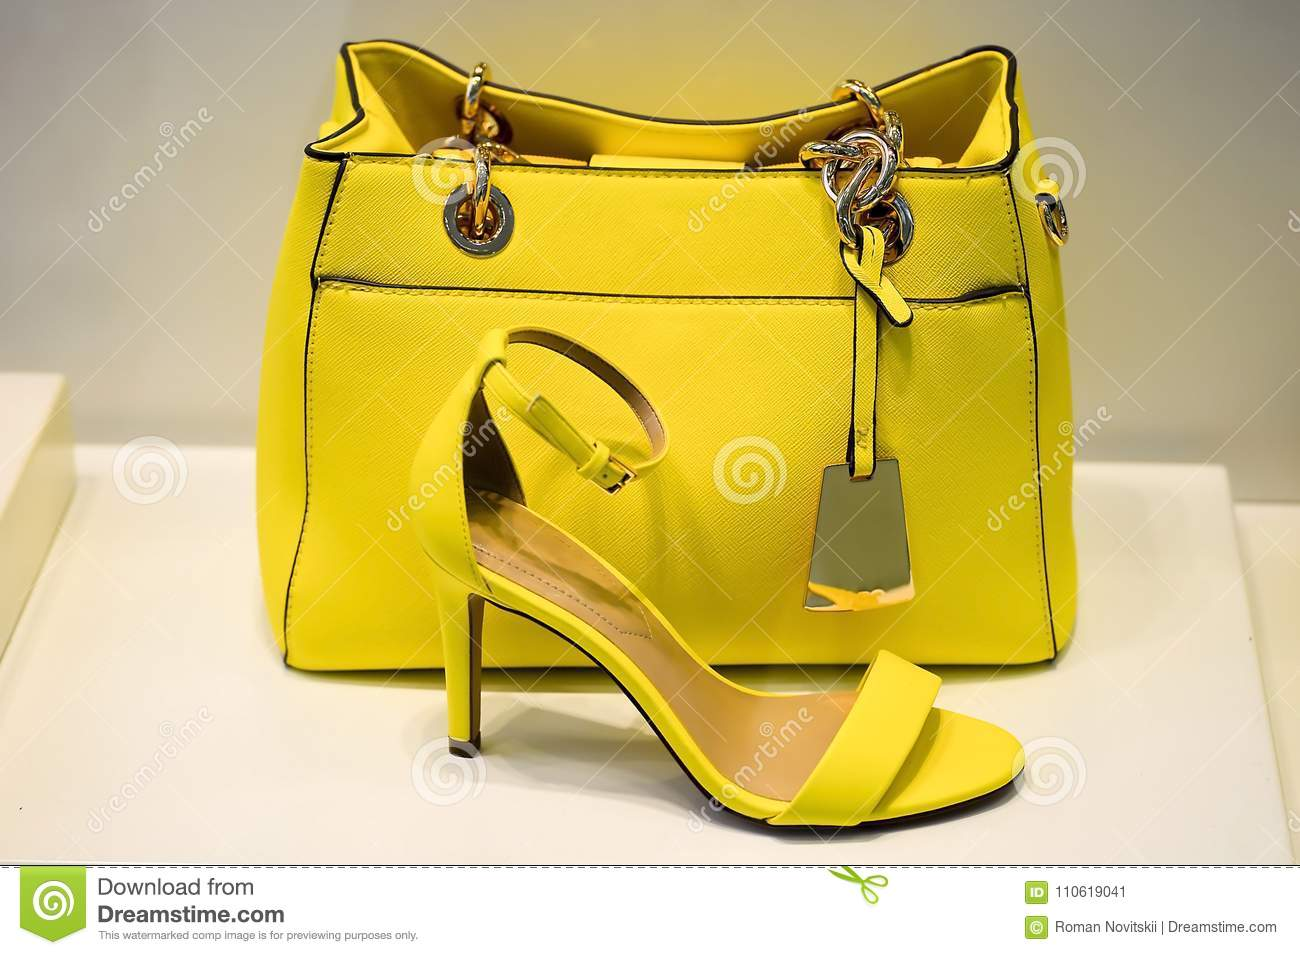 1b0c3f088248e8 ... Matching Bags High Quality Party Shoes And Bag Shoes And Bags Set  Source · Yellow Bag With A Greenish Tint In Combination Shoes The Same  Colors